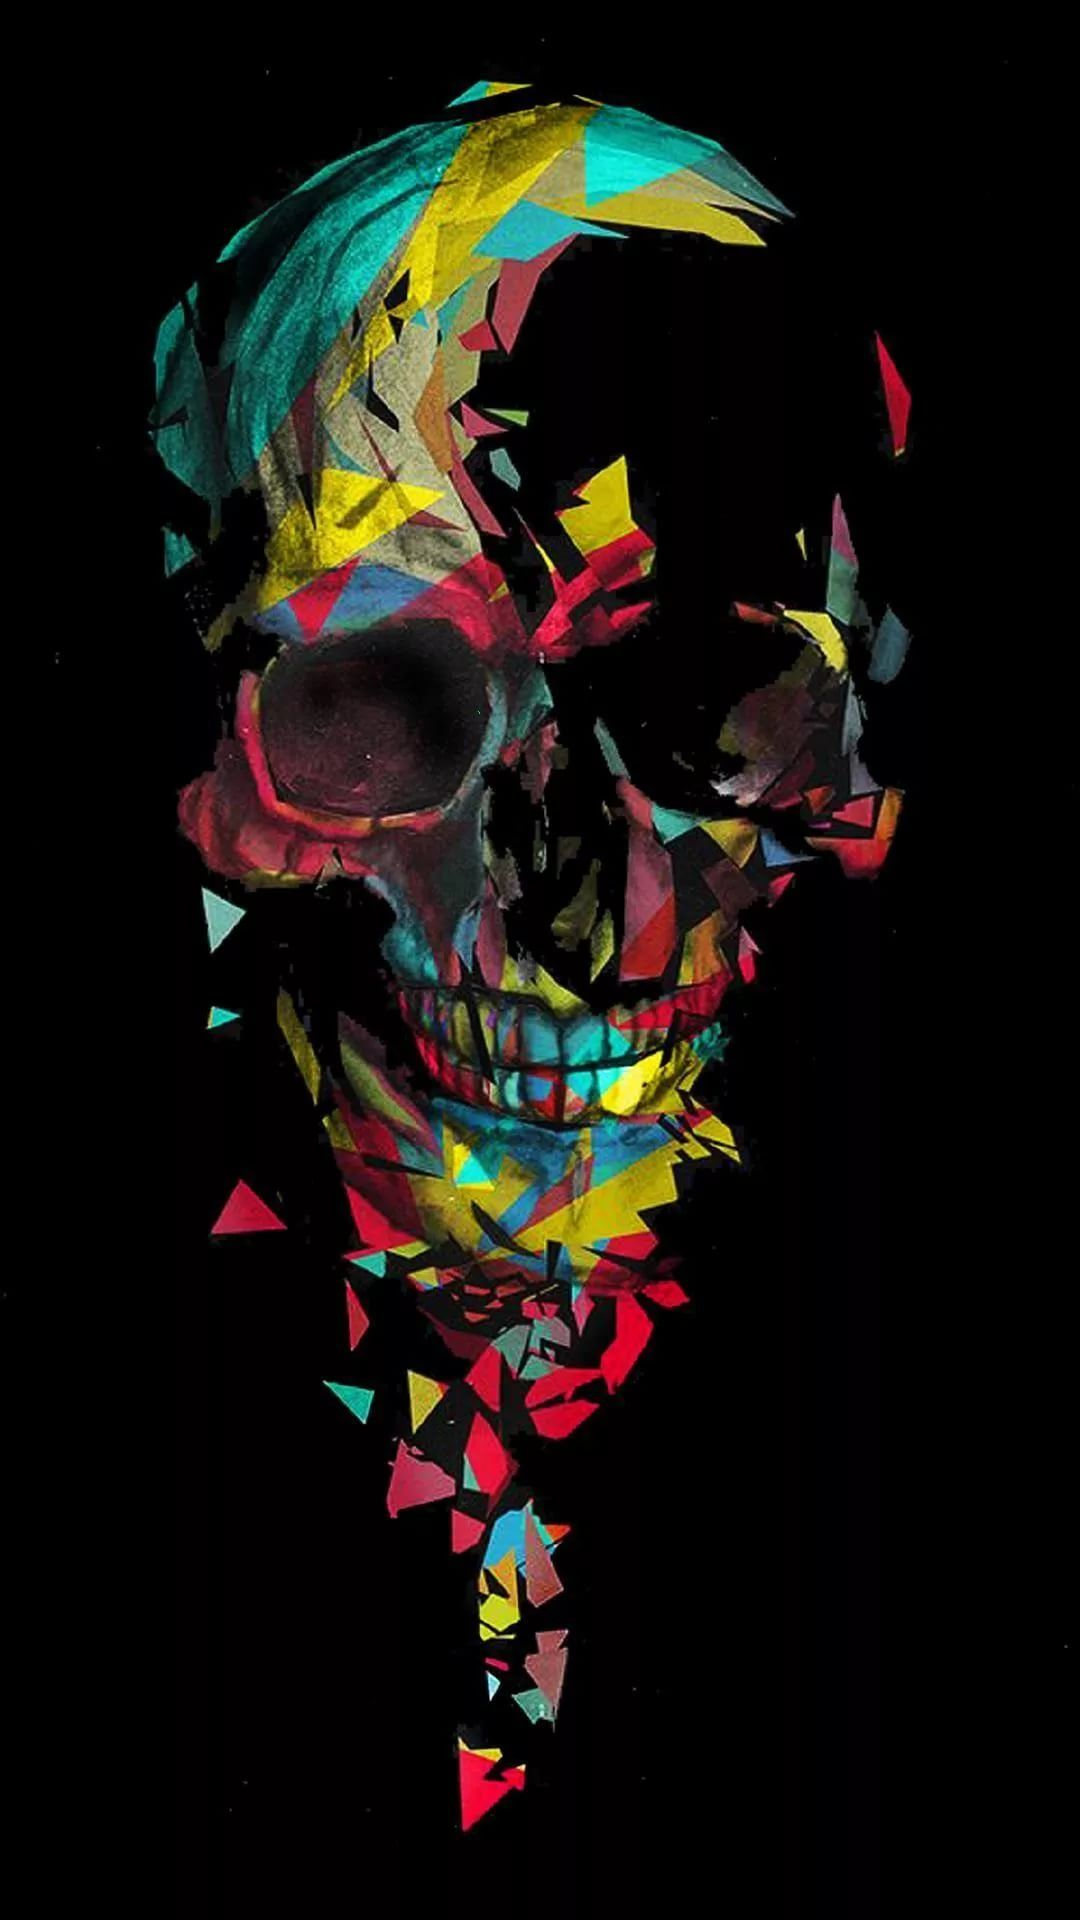 Cool Skull iPhone Wallpapers: 20+